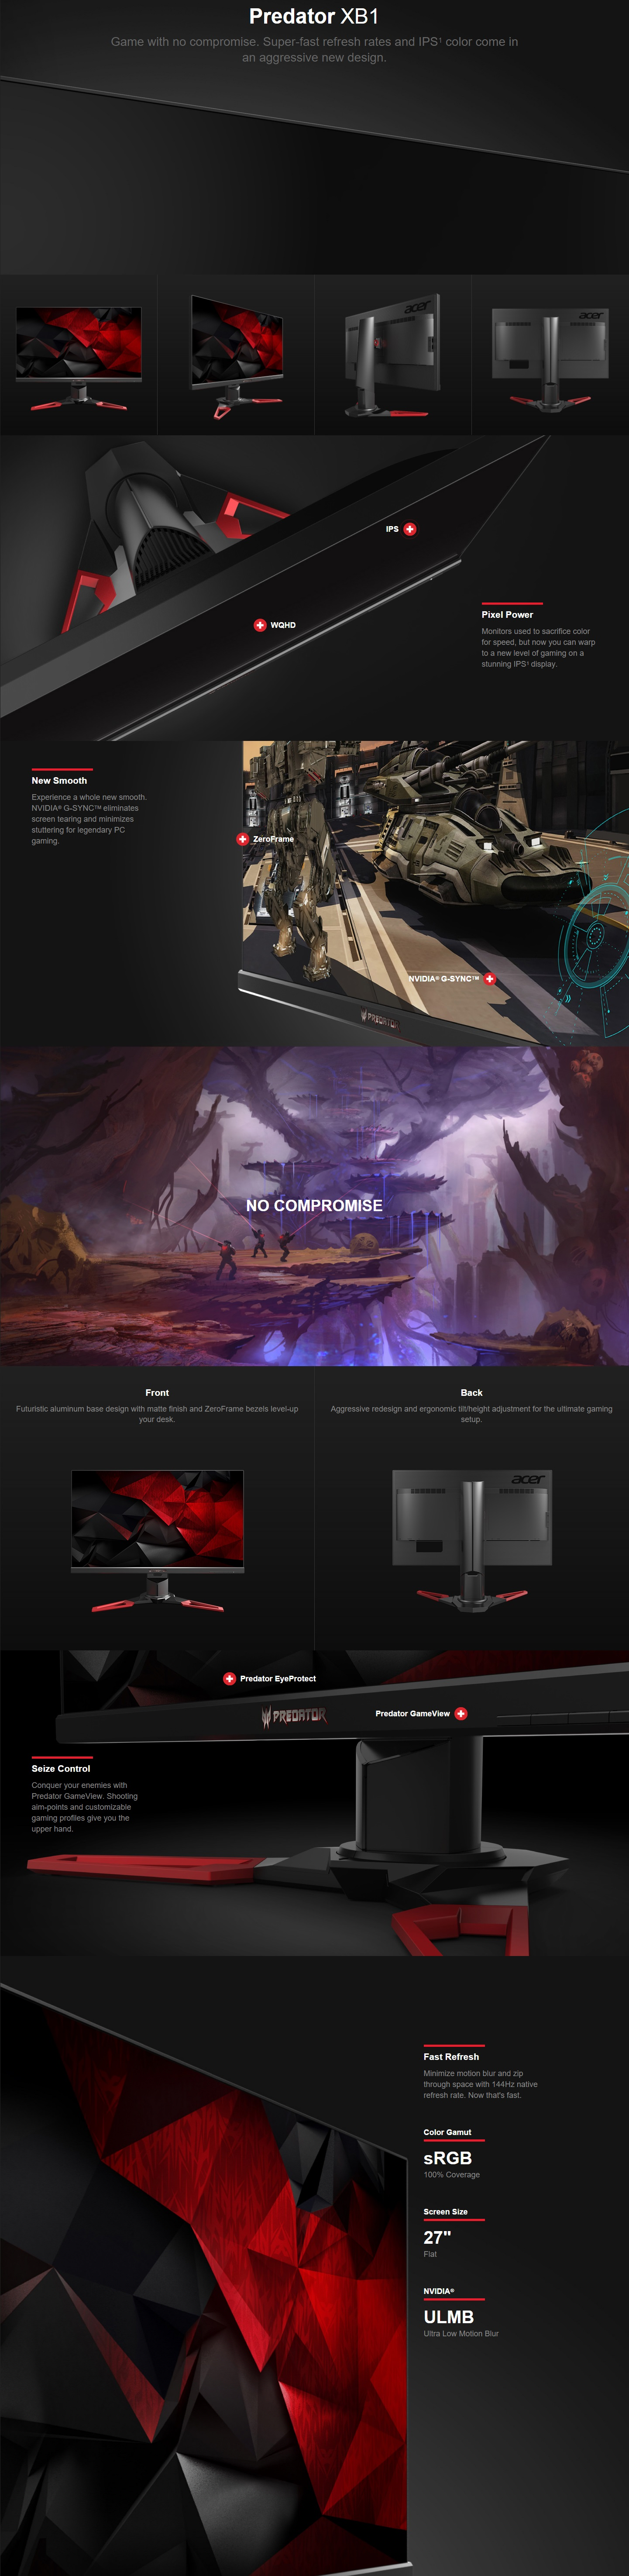 "A large marketing image providing additional information about the product Acer Predator XB271HU 27"" WQHD G-SYNC 2 144Hz (165Hz OC) 4MS IPS LED Gaming Monitor - Additional alt info not provided"